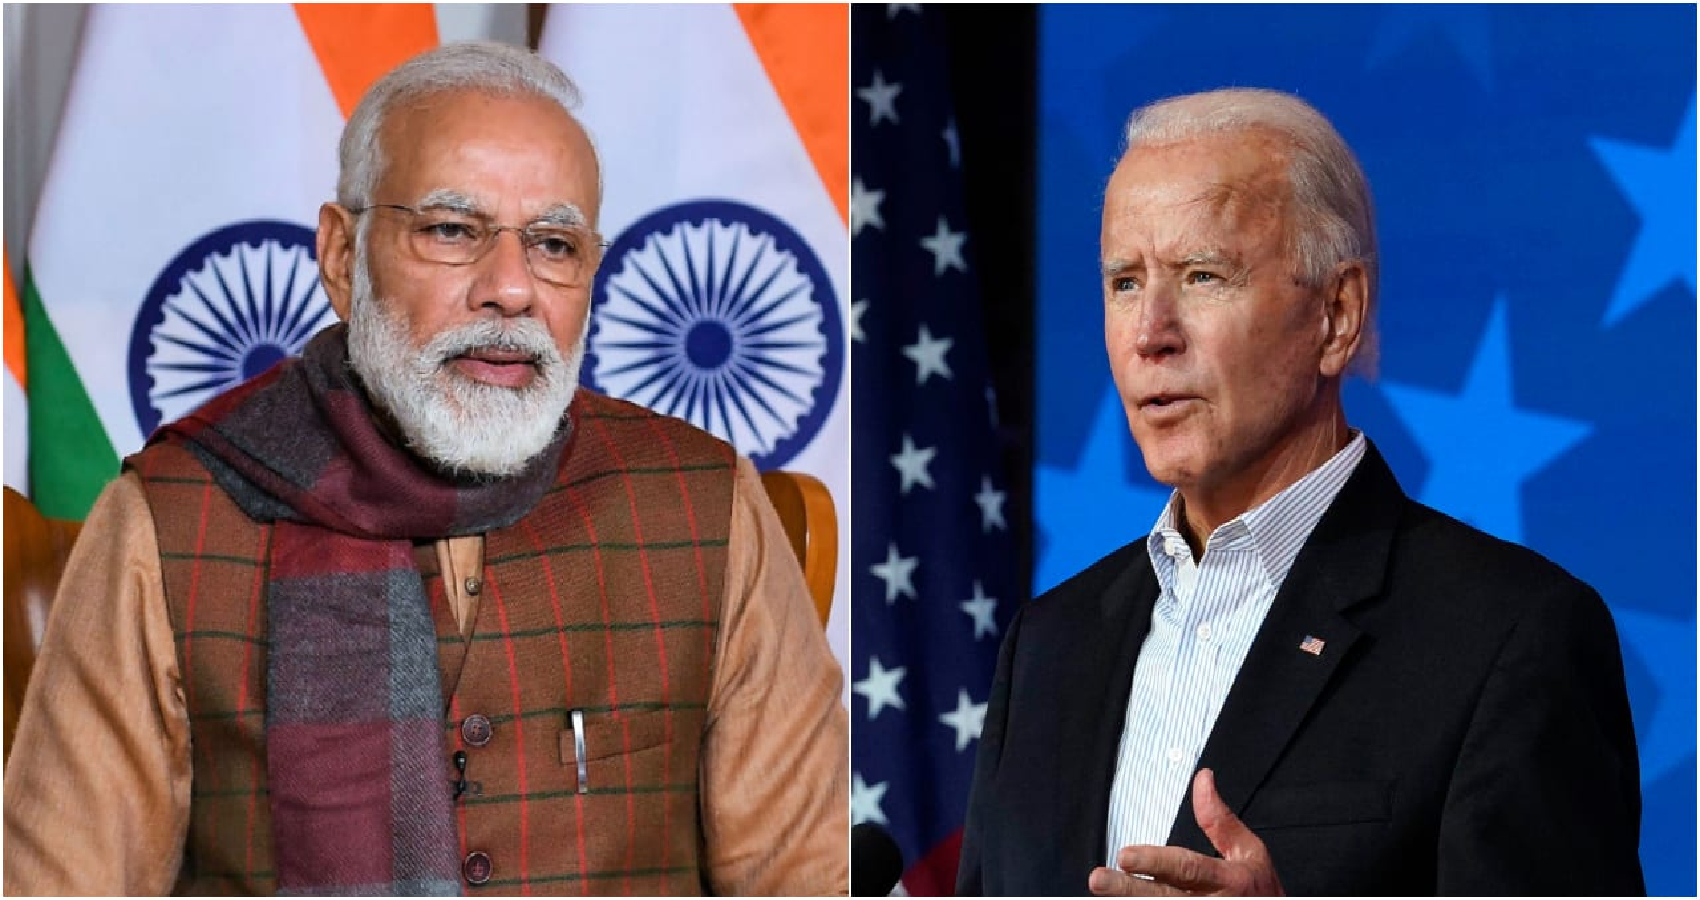 Modi Announces US-India Partnership To Fight Climate Change